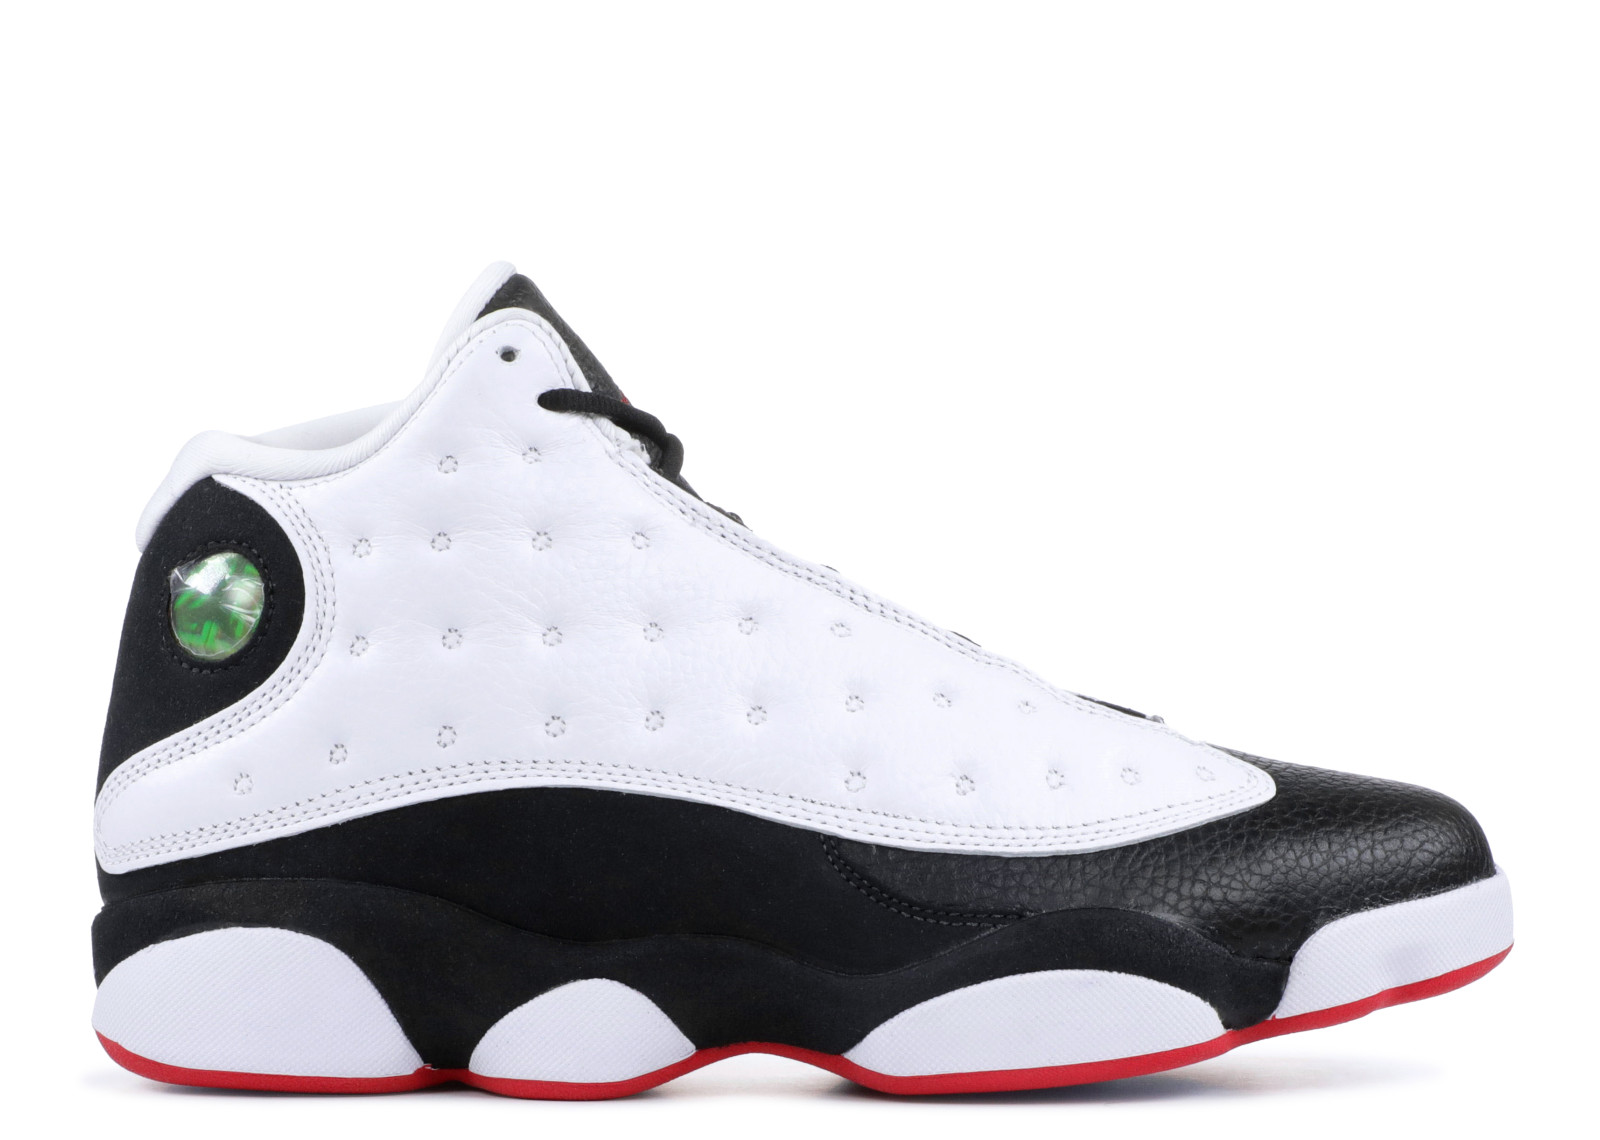 Air Jordan 13 Reverse He Got Game 2020 Release Date